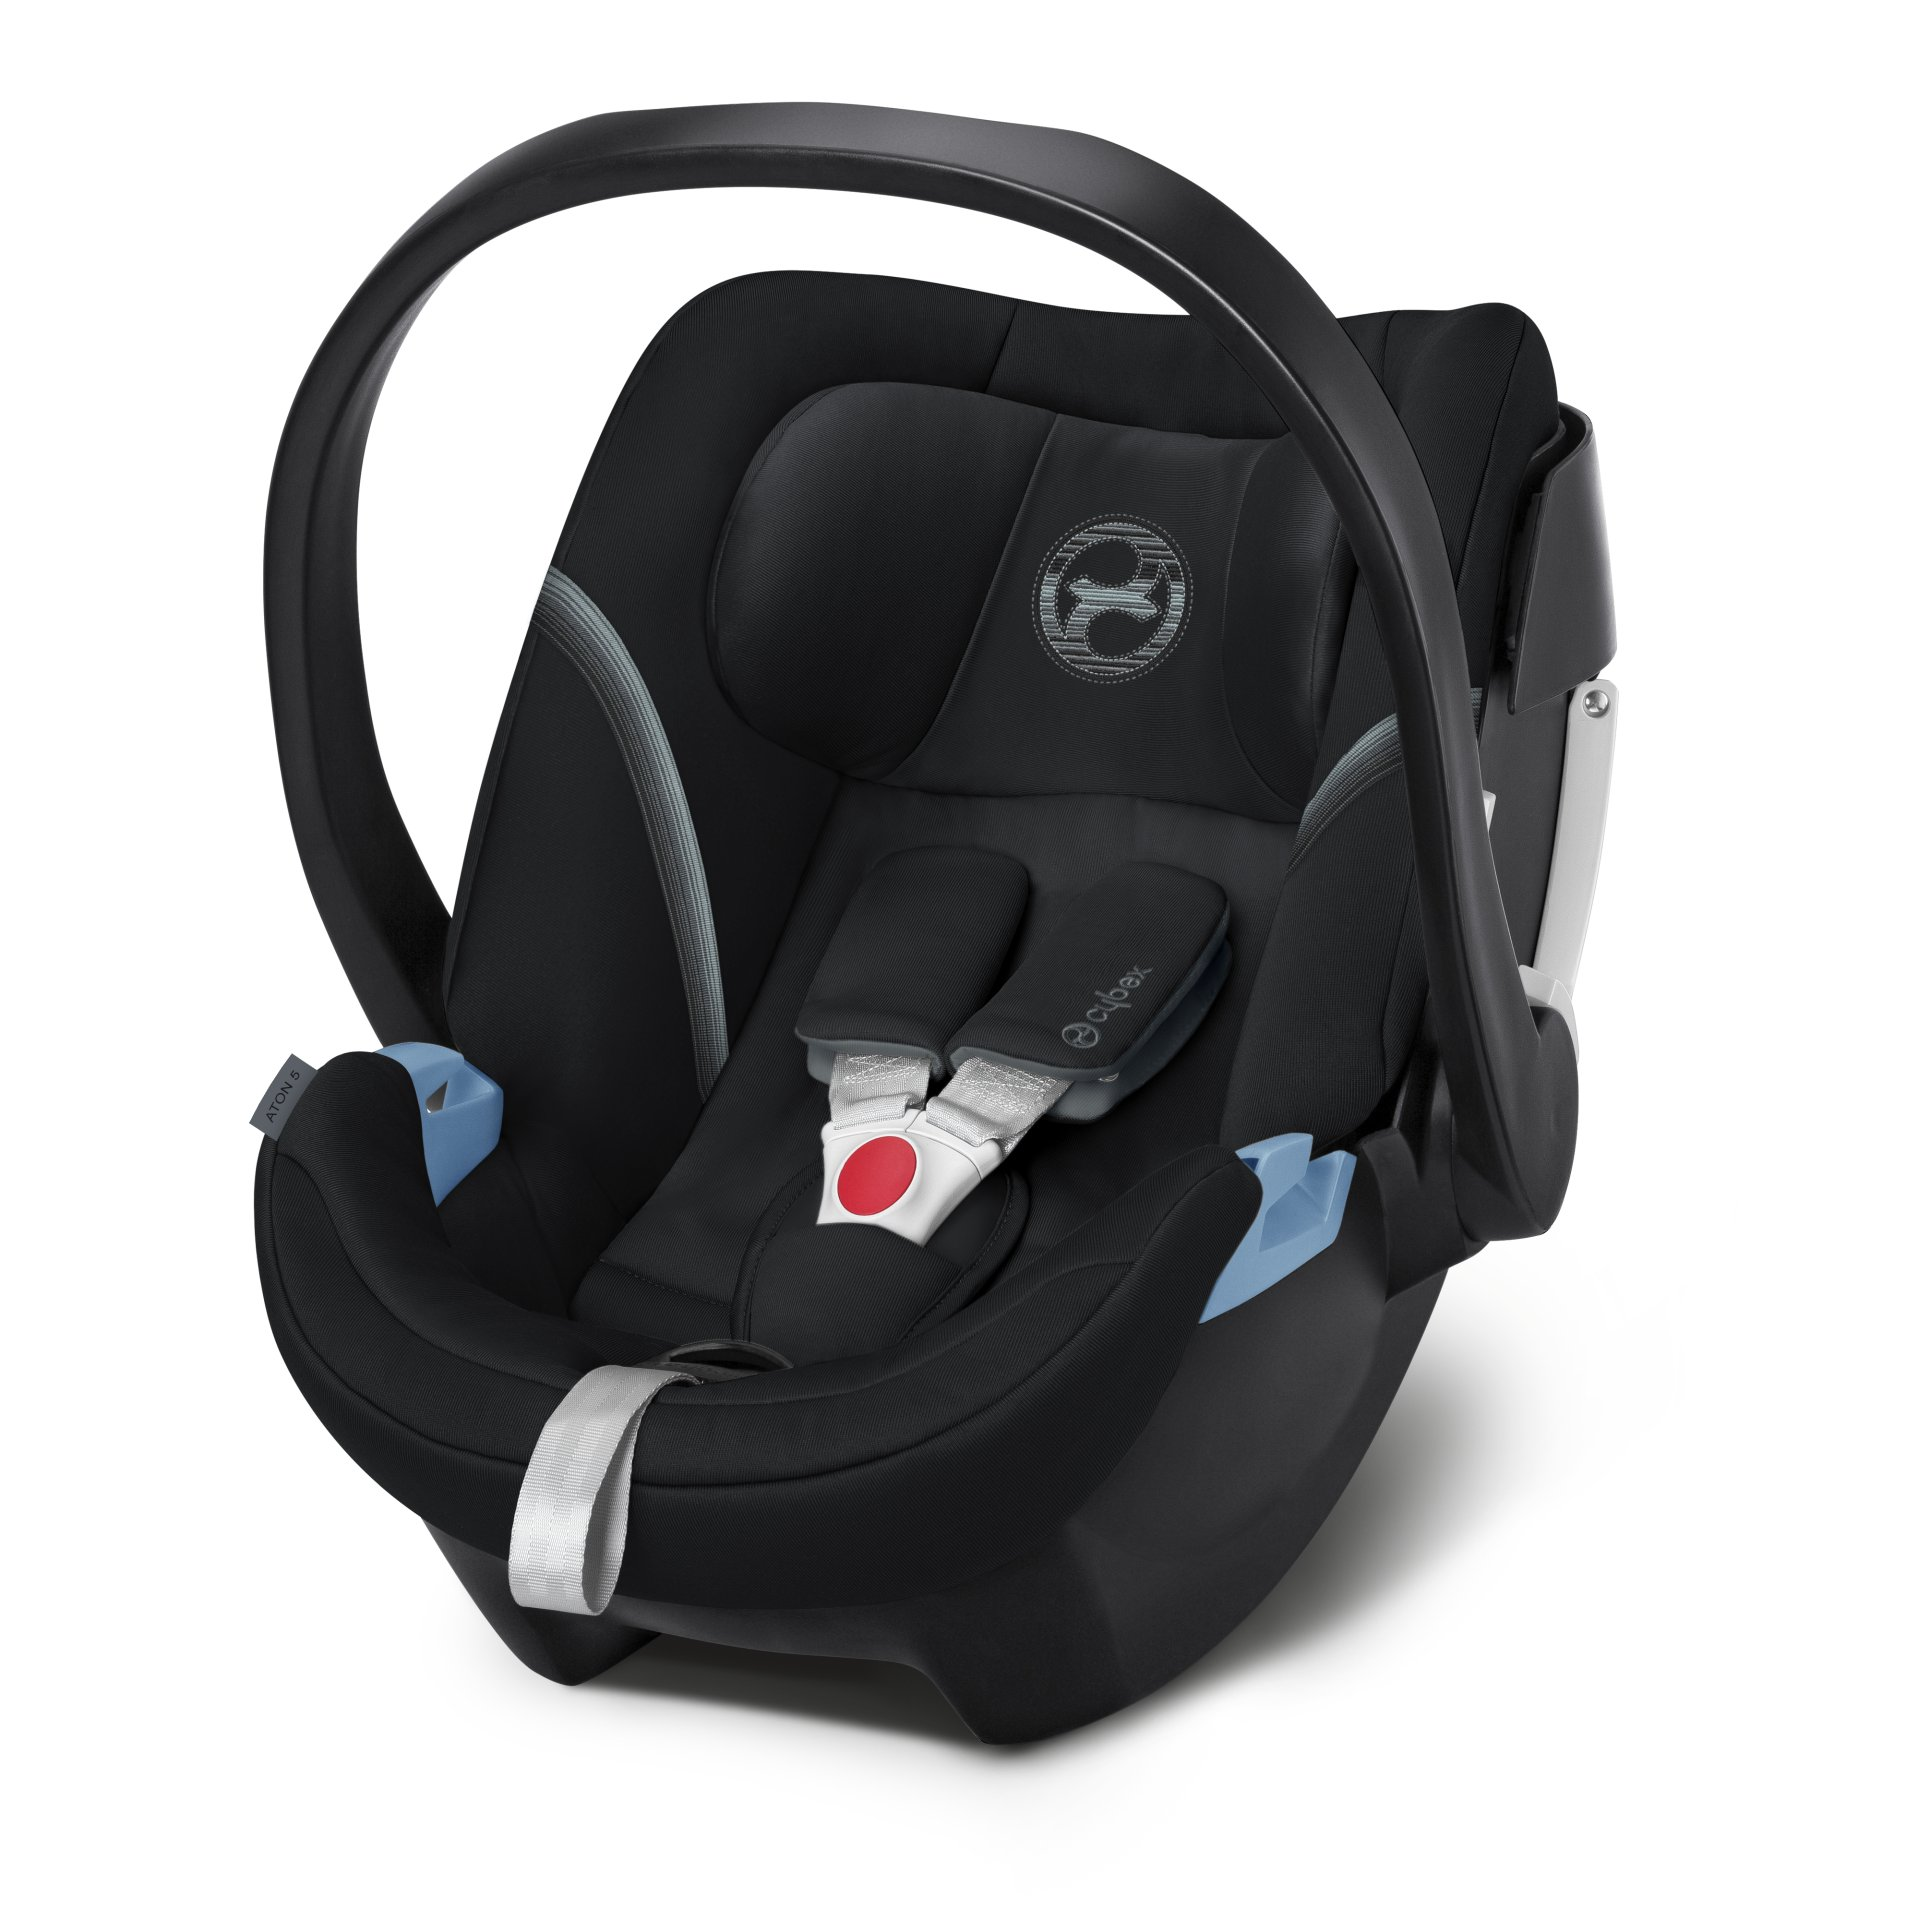 Cybex Infant Car Seat Aton 5 Granite Black Black Kidsroom De